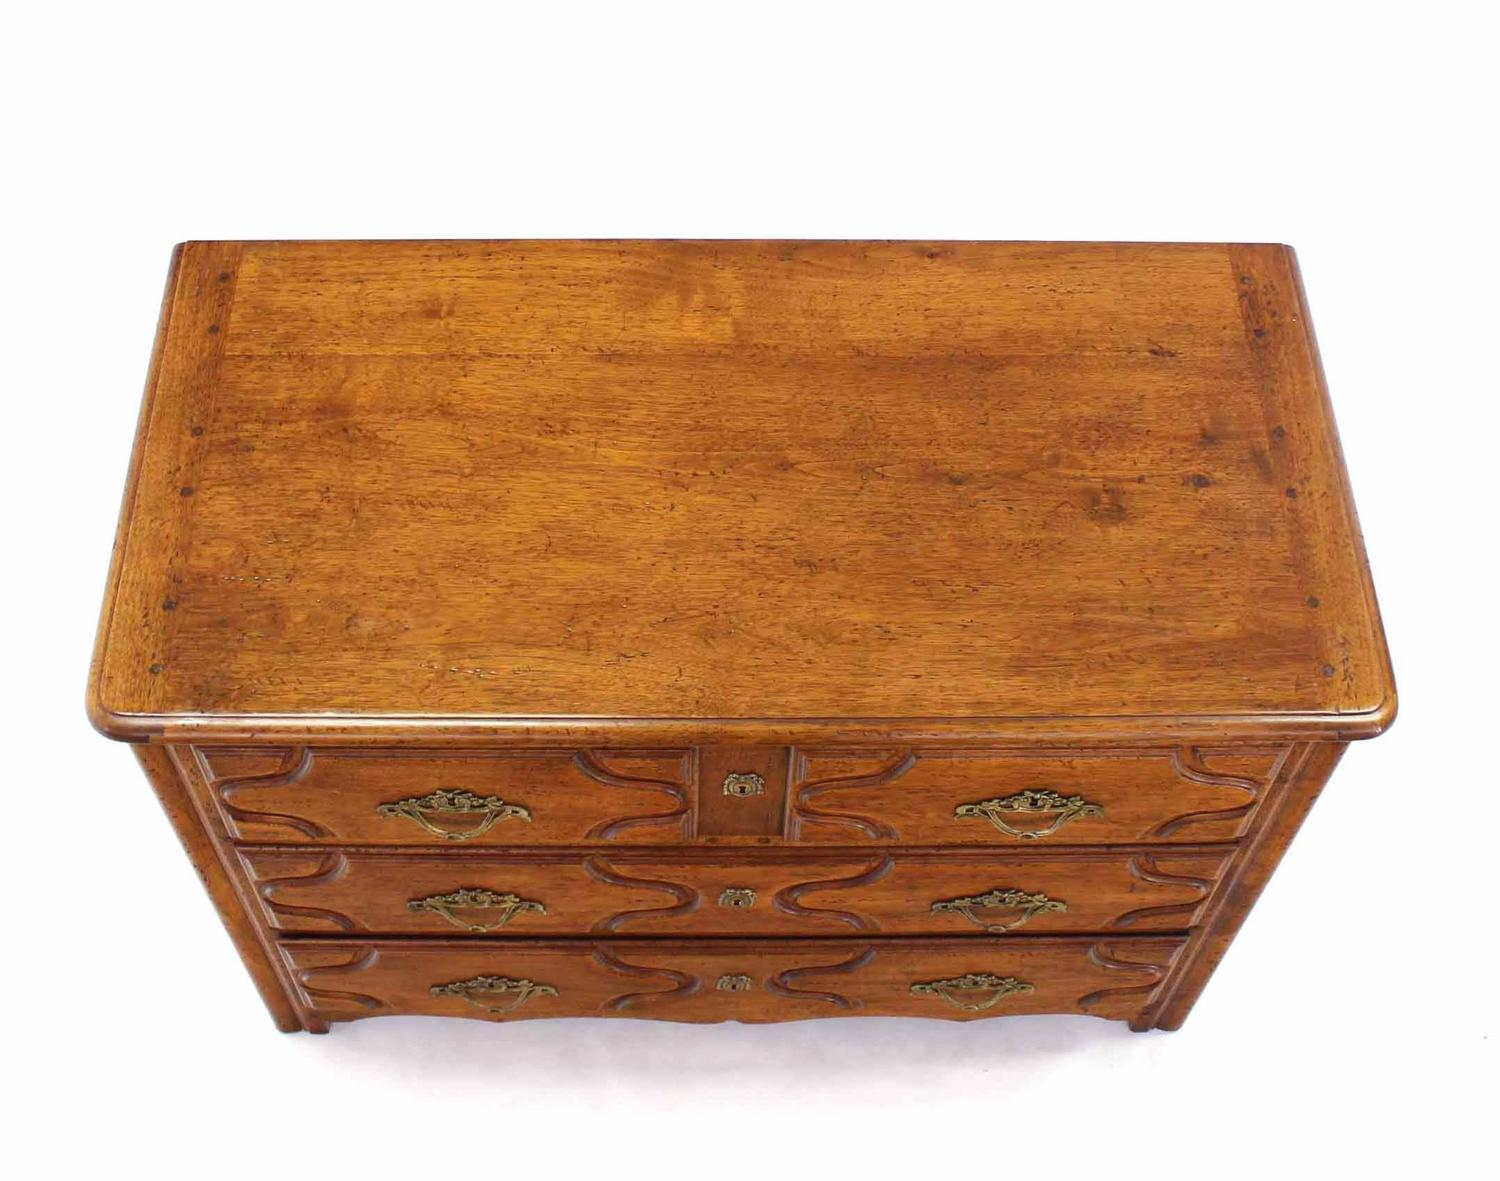 #A46227 Solid Wood Gothic Three Drawer Chest Of Drawers For Sale At 1stdibs with 1500x1181 px of Best Chest Of Drawers Solid Wood 11811500 image @ avoidforclosure.info